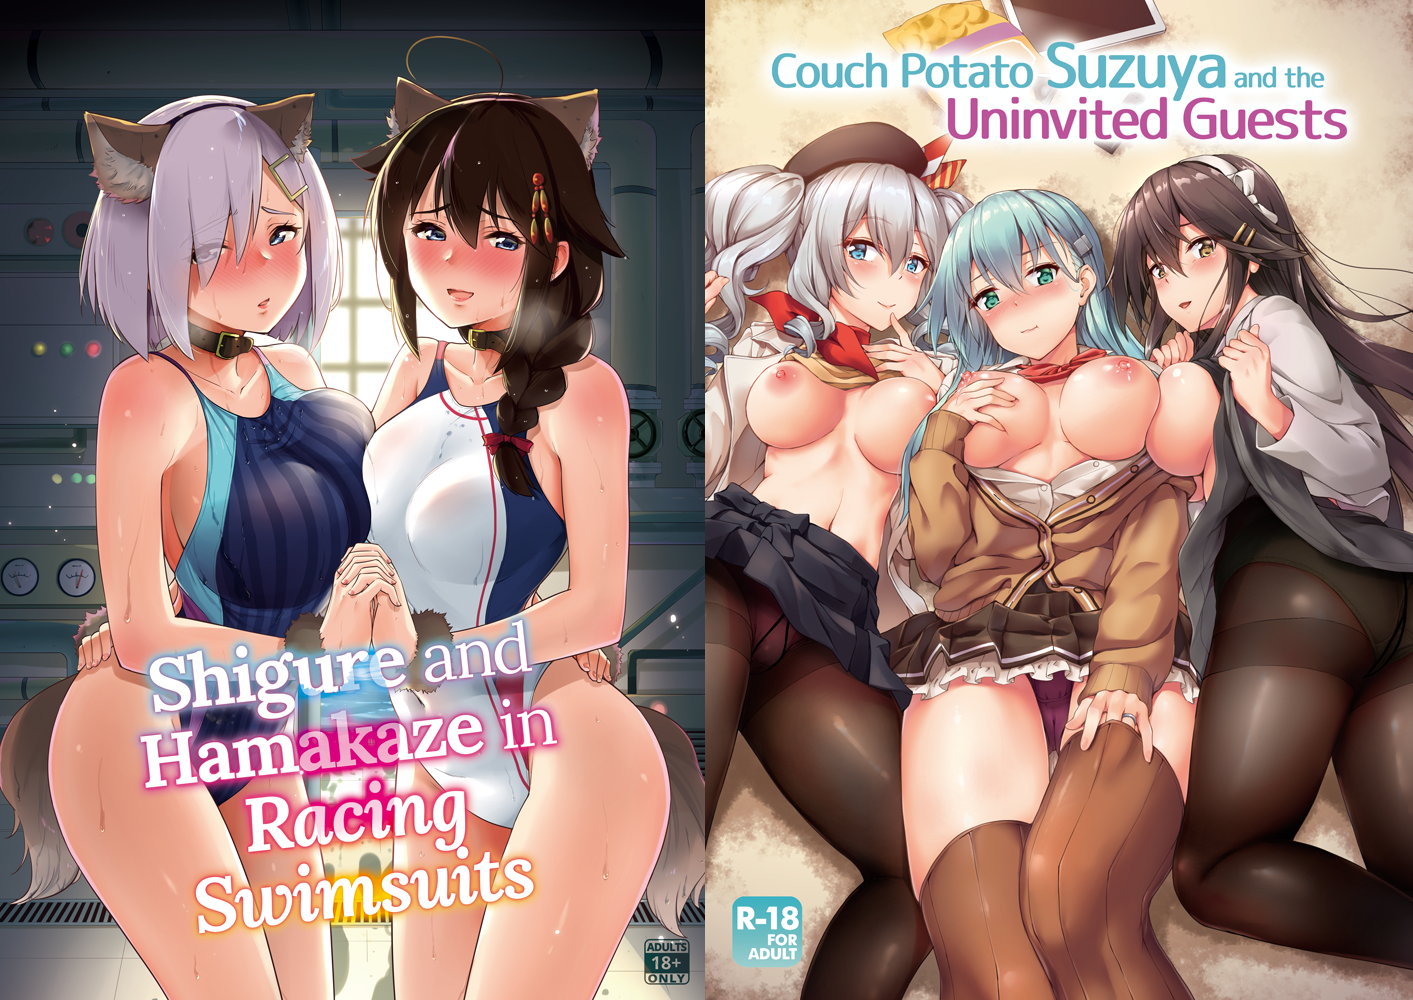 Couch Potato Suzuya and the Uninvited Guests and Shigure and Hamakaze in Racing Swimsuits covers